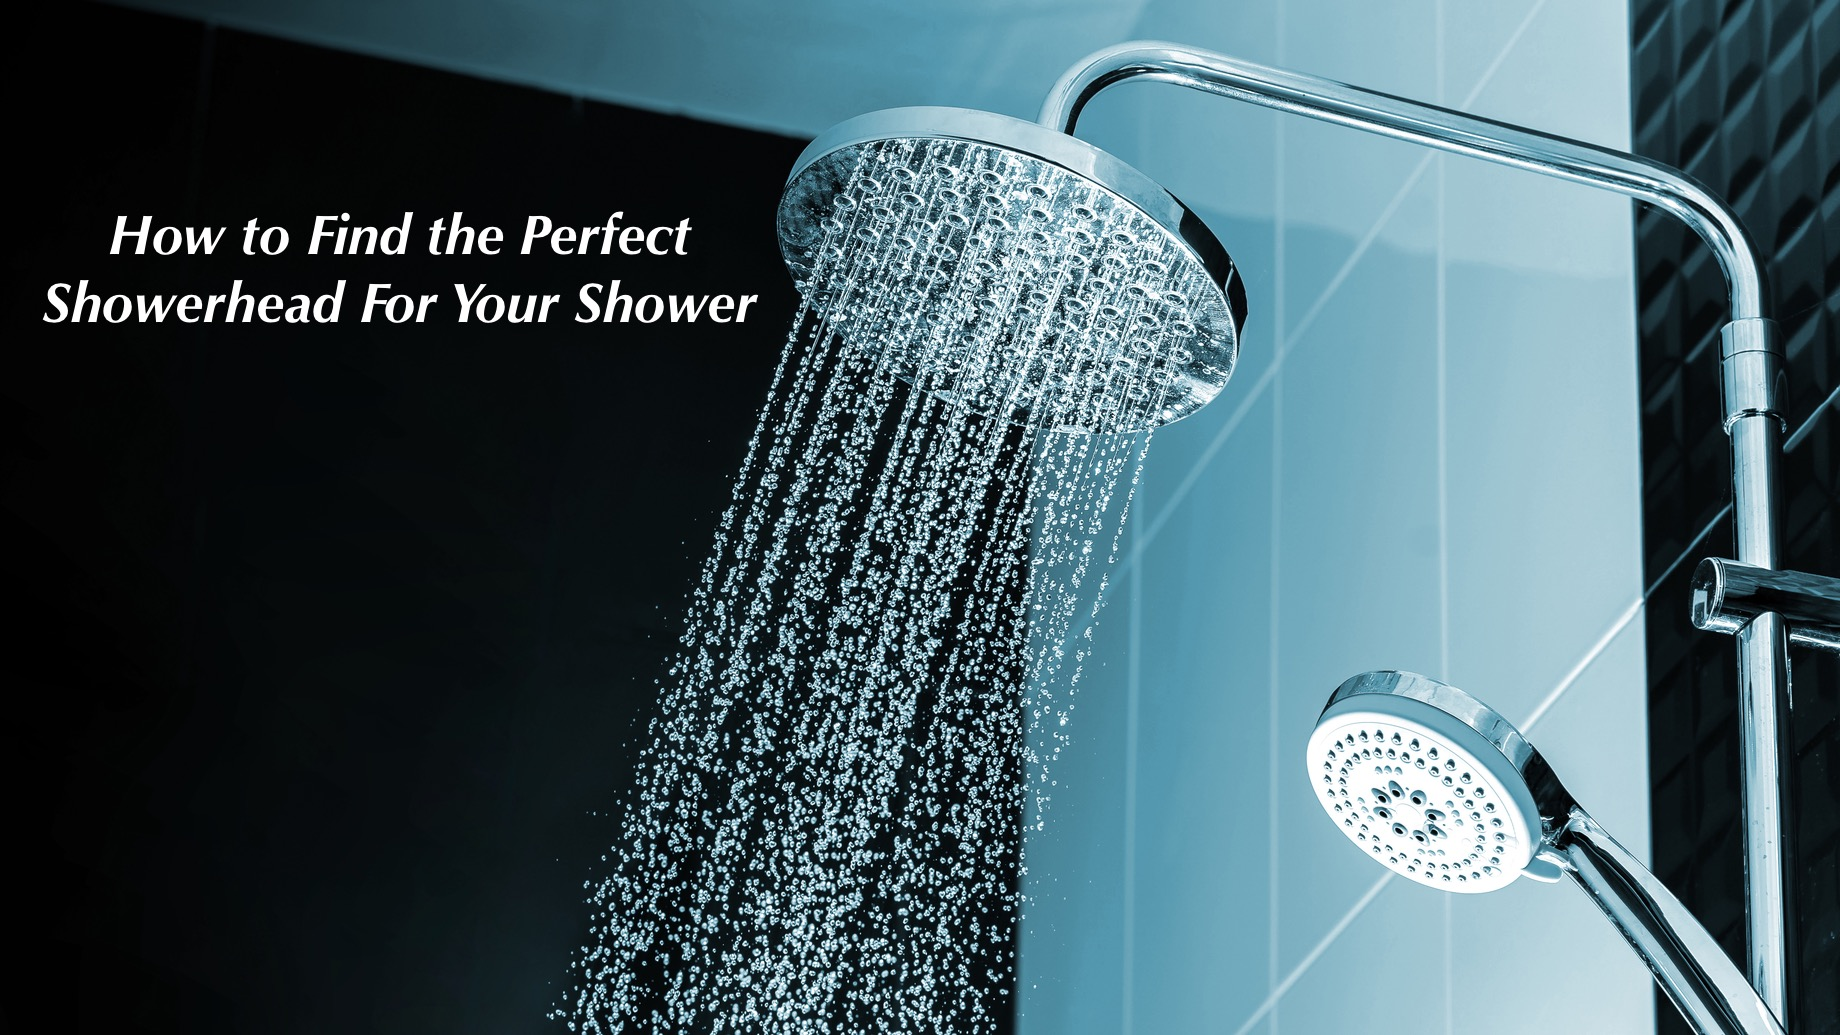 How to Find the Perfect Showerhead For Your Shower